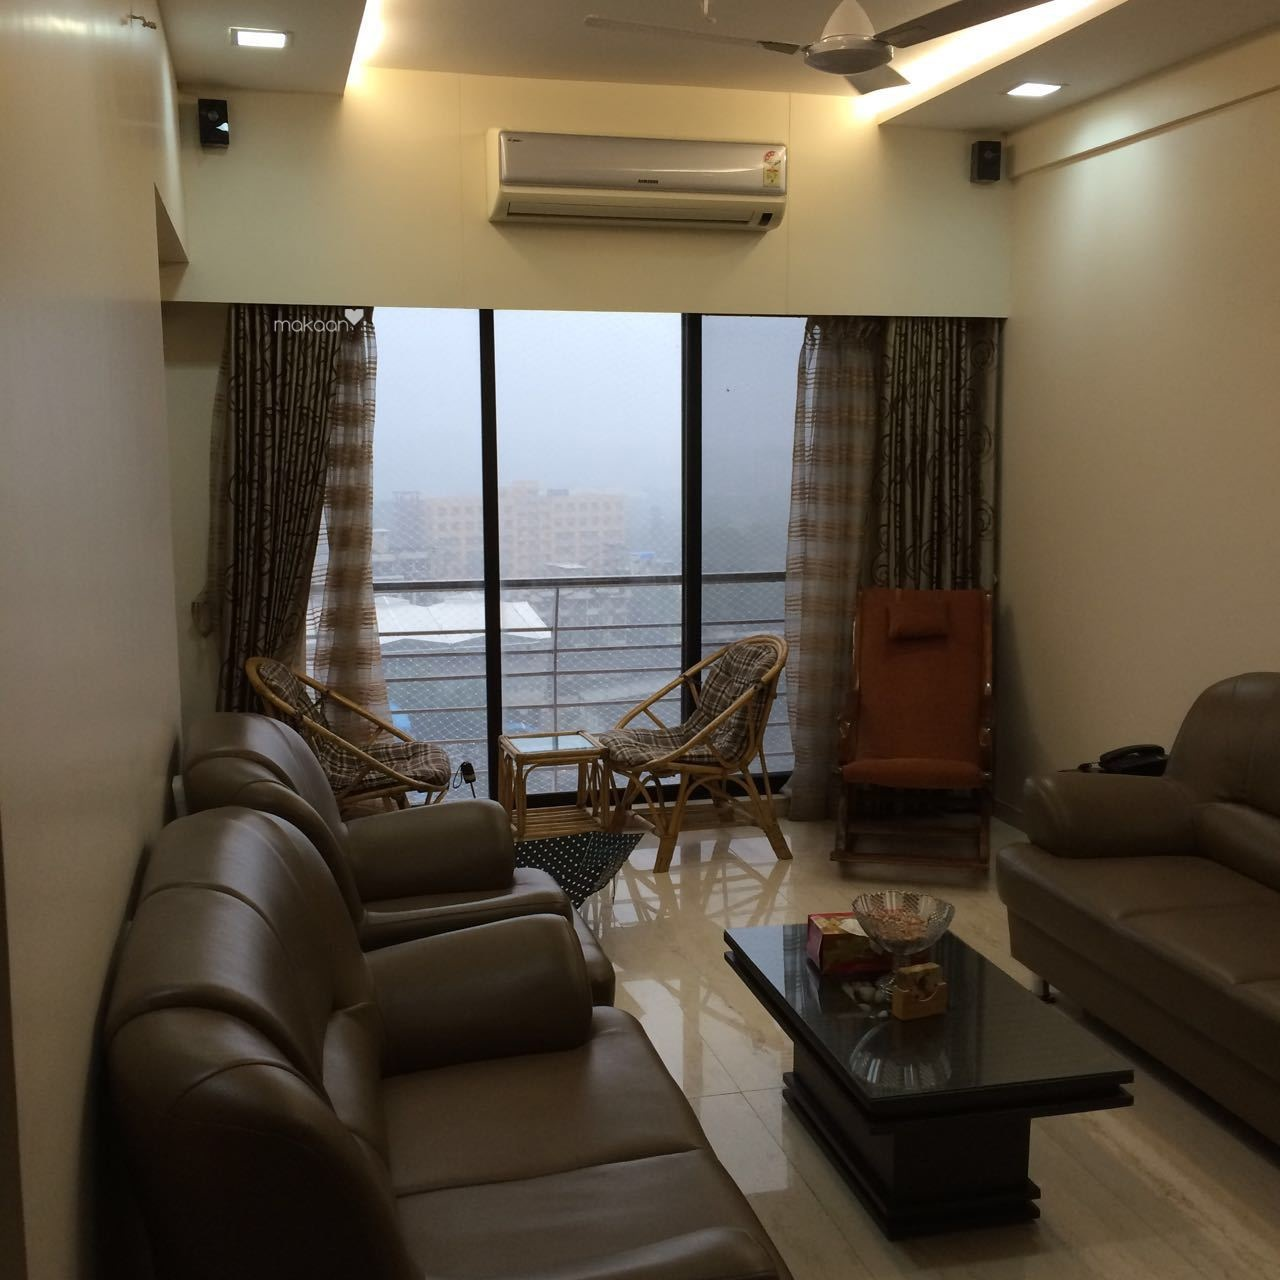 1150 sq ft 2BHK 2BHK+2T (1,150 sq ft) Property By Global Real Estate In Project, Khar West